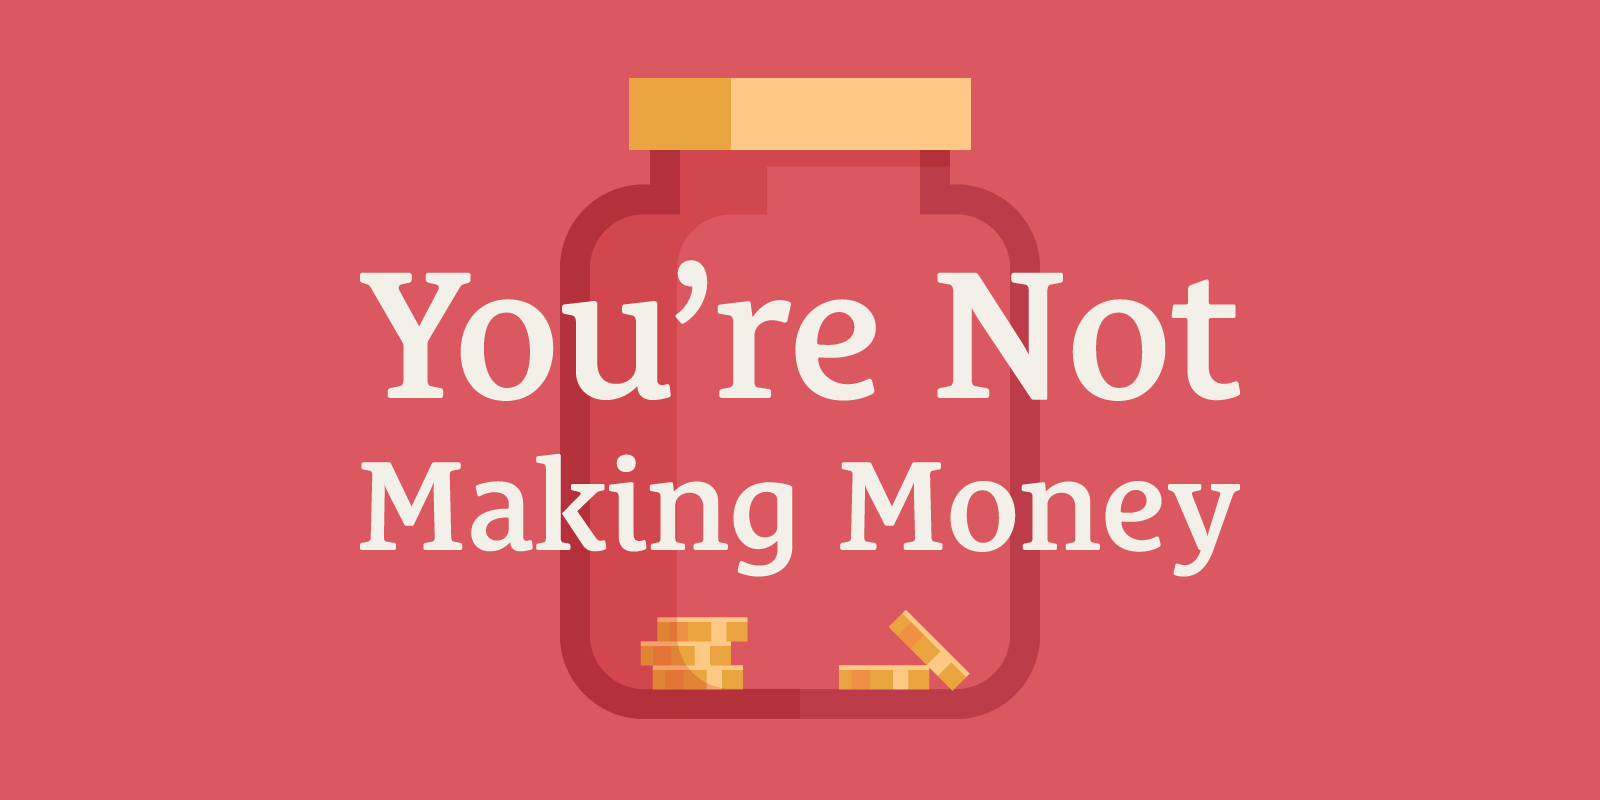 Let's Get Real About Why You're Not Making Money